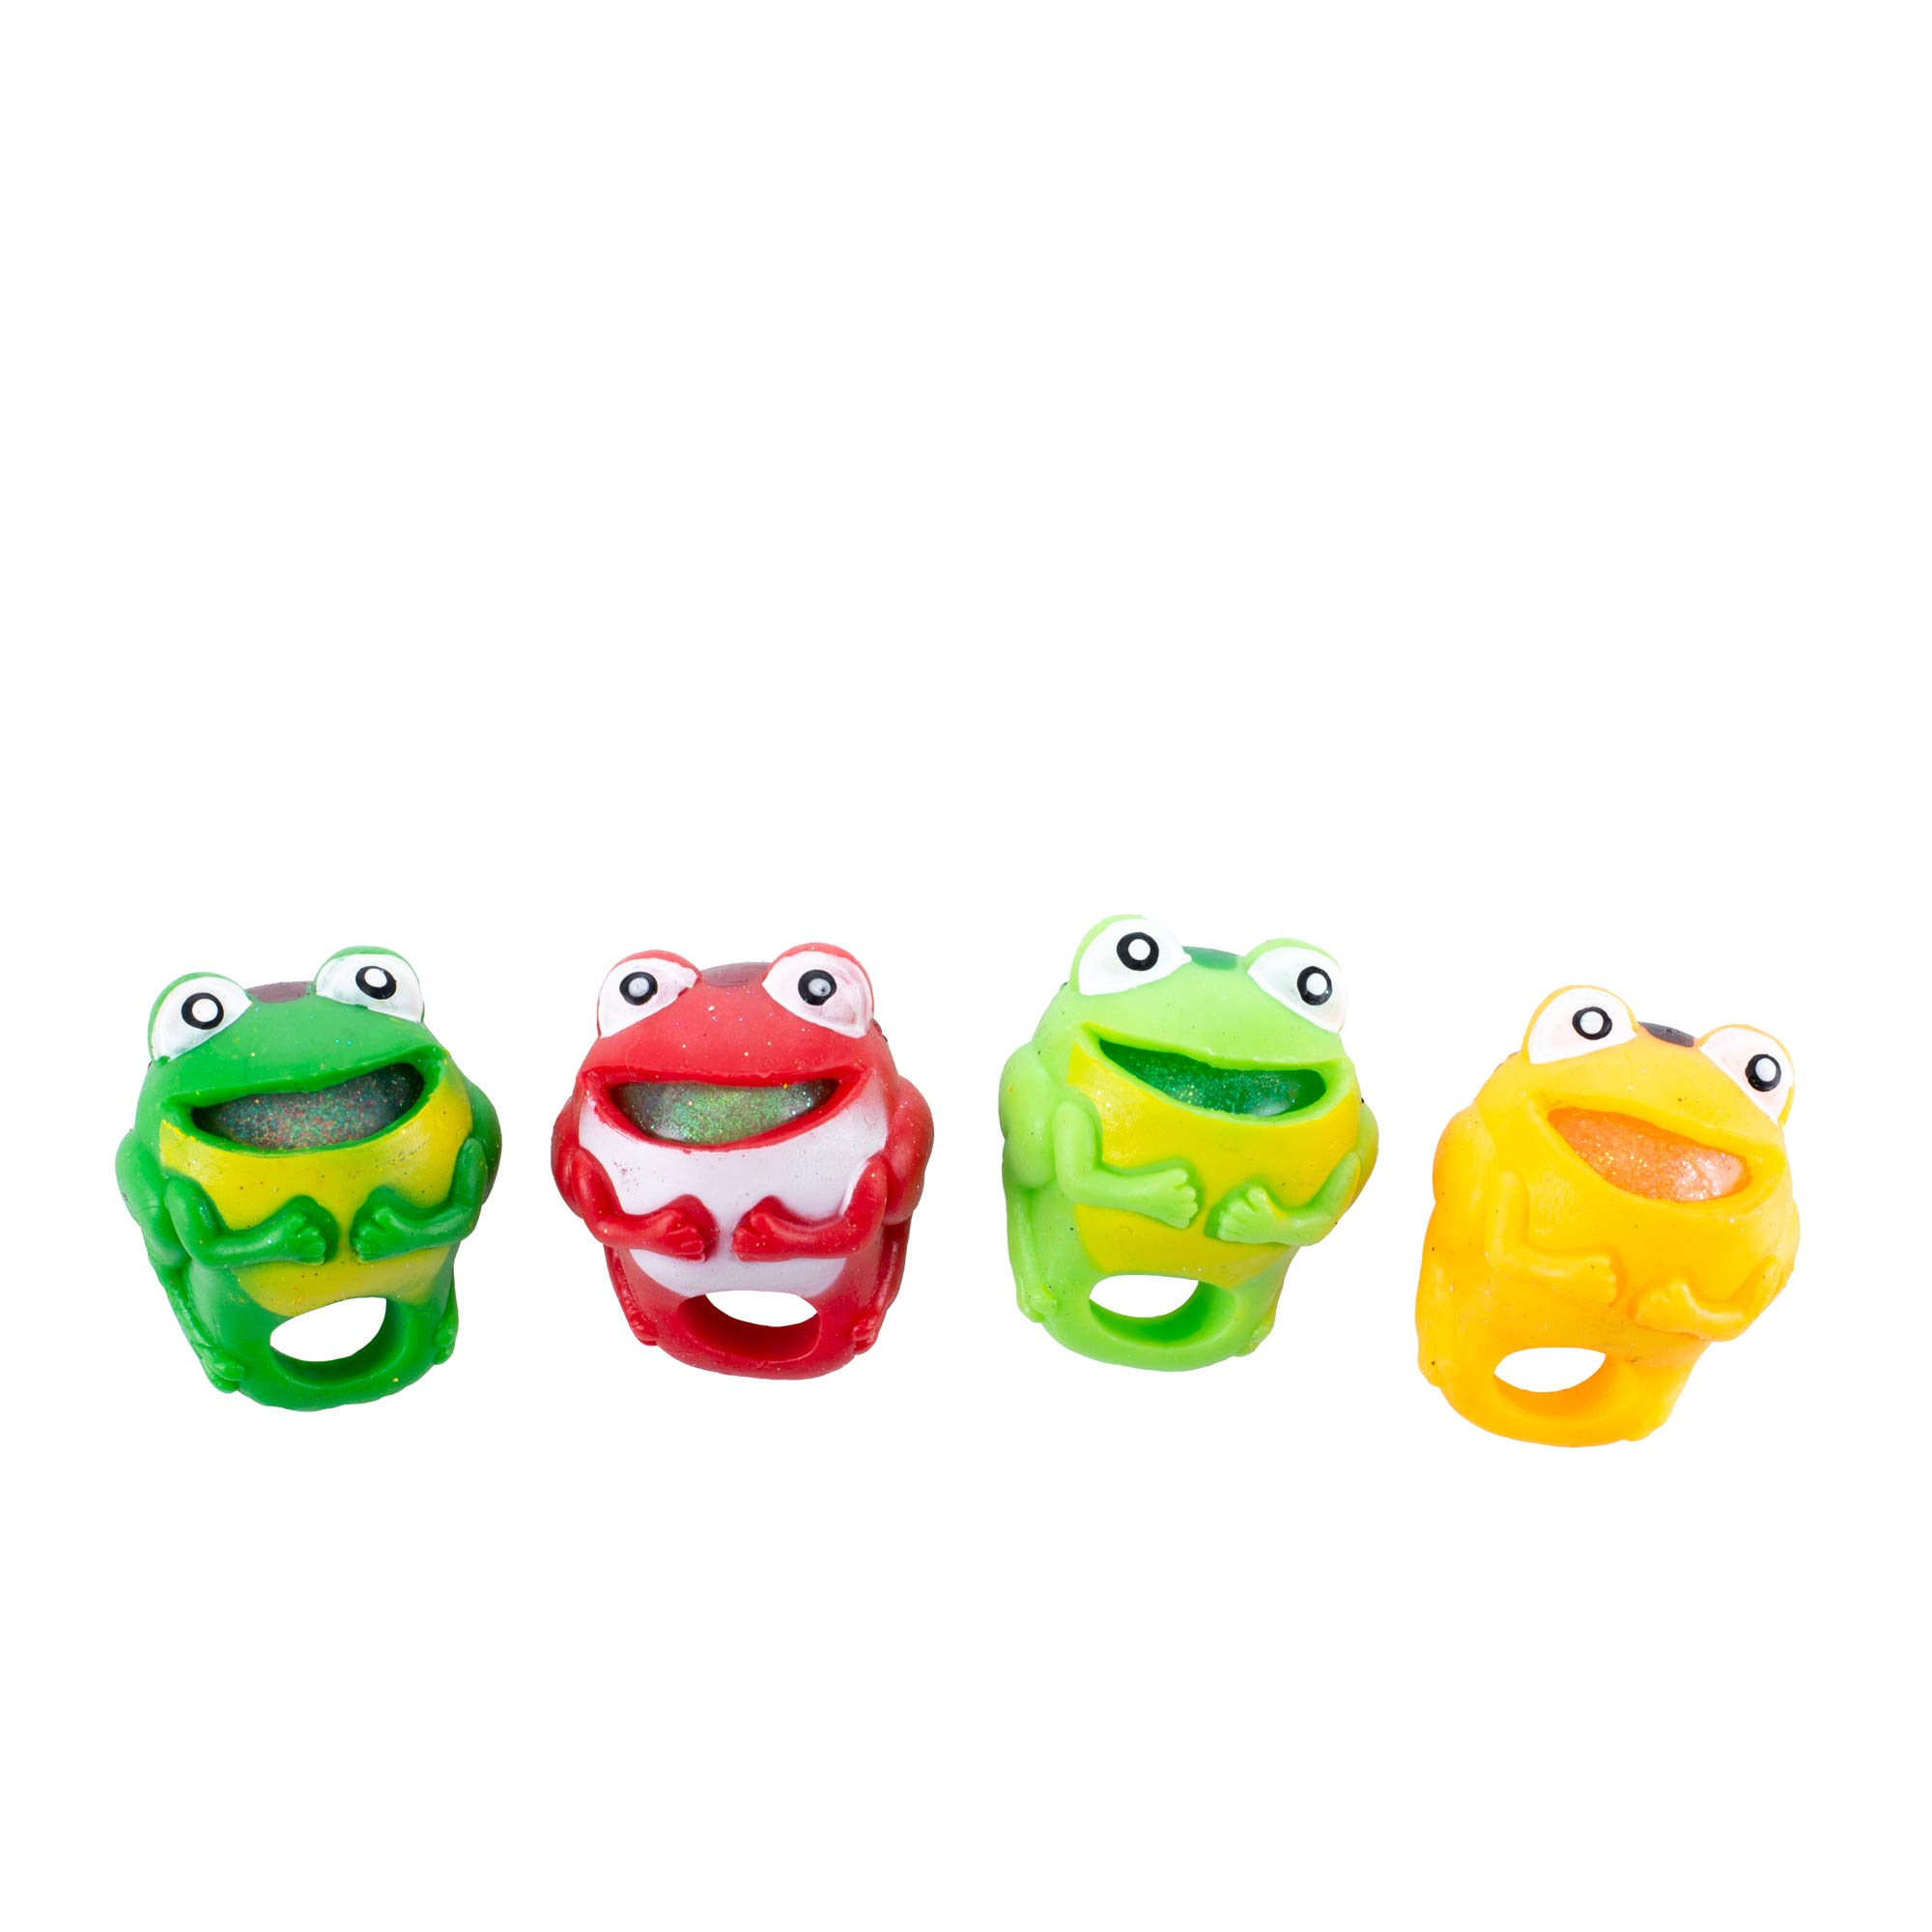 Master Toy Squeeze Frog Multicolored 2 x 2 Acrylic Children's Pretend Play Rings Set of 4 by Master Toy